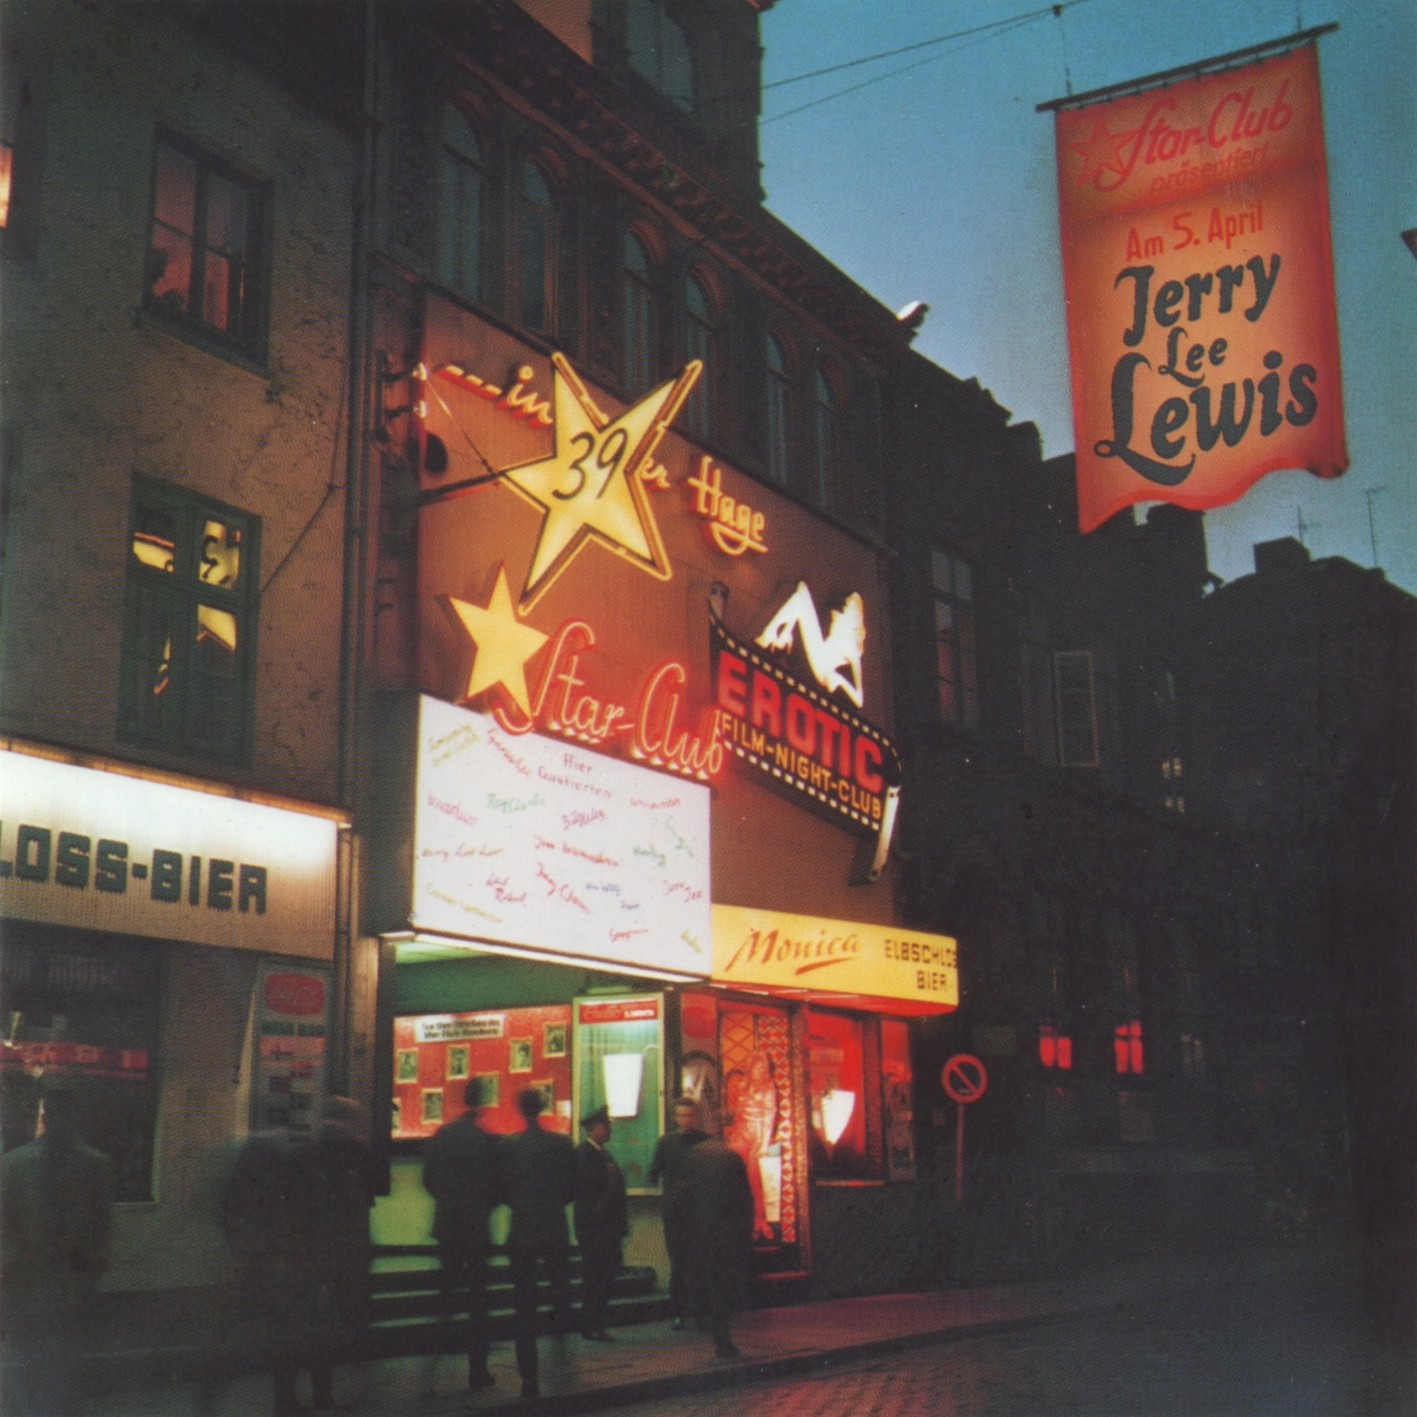 Jerry Lee Lewis - Live At The Star-Club Hamburg - Front